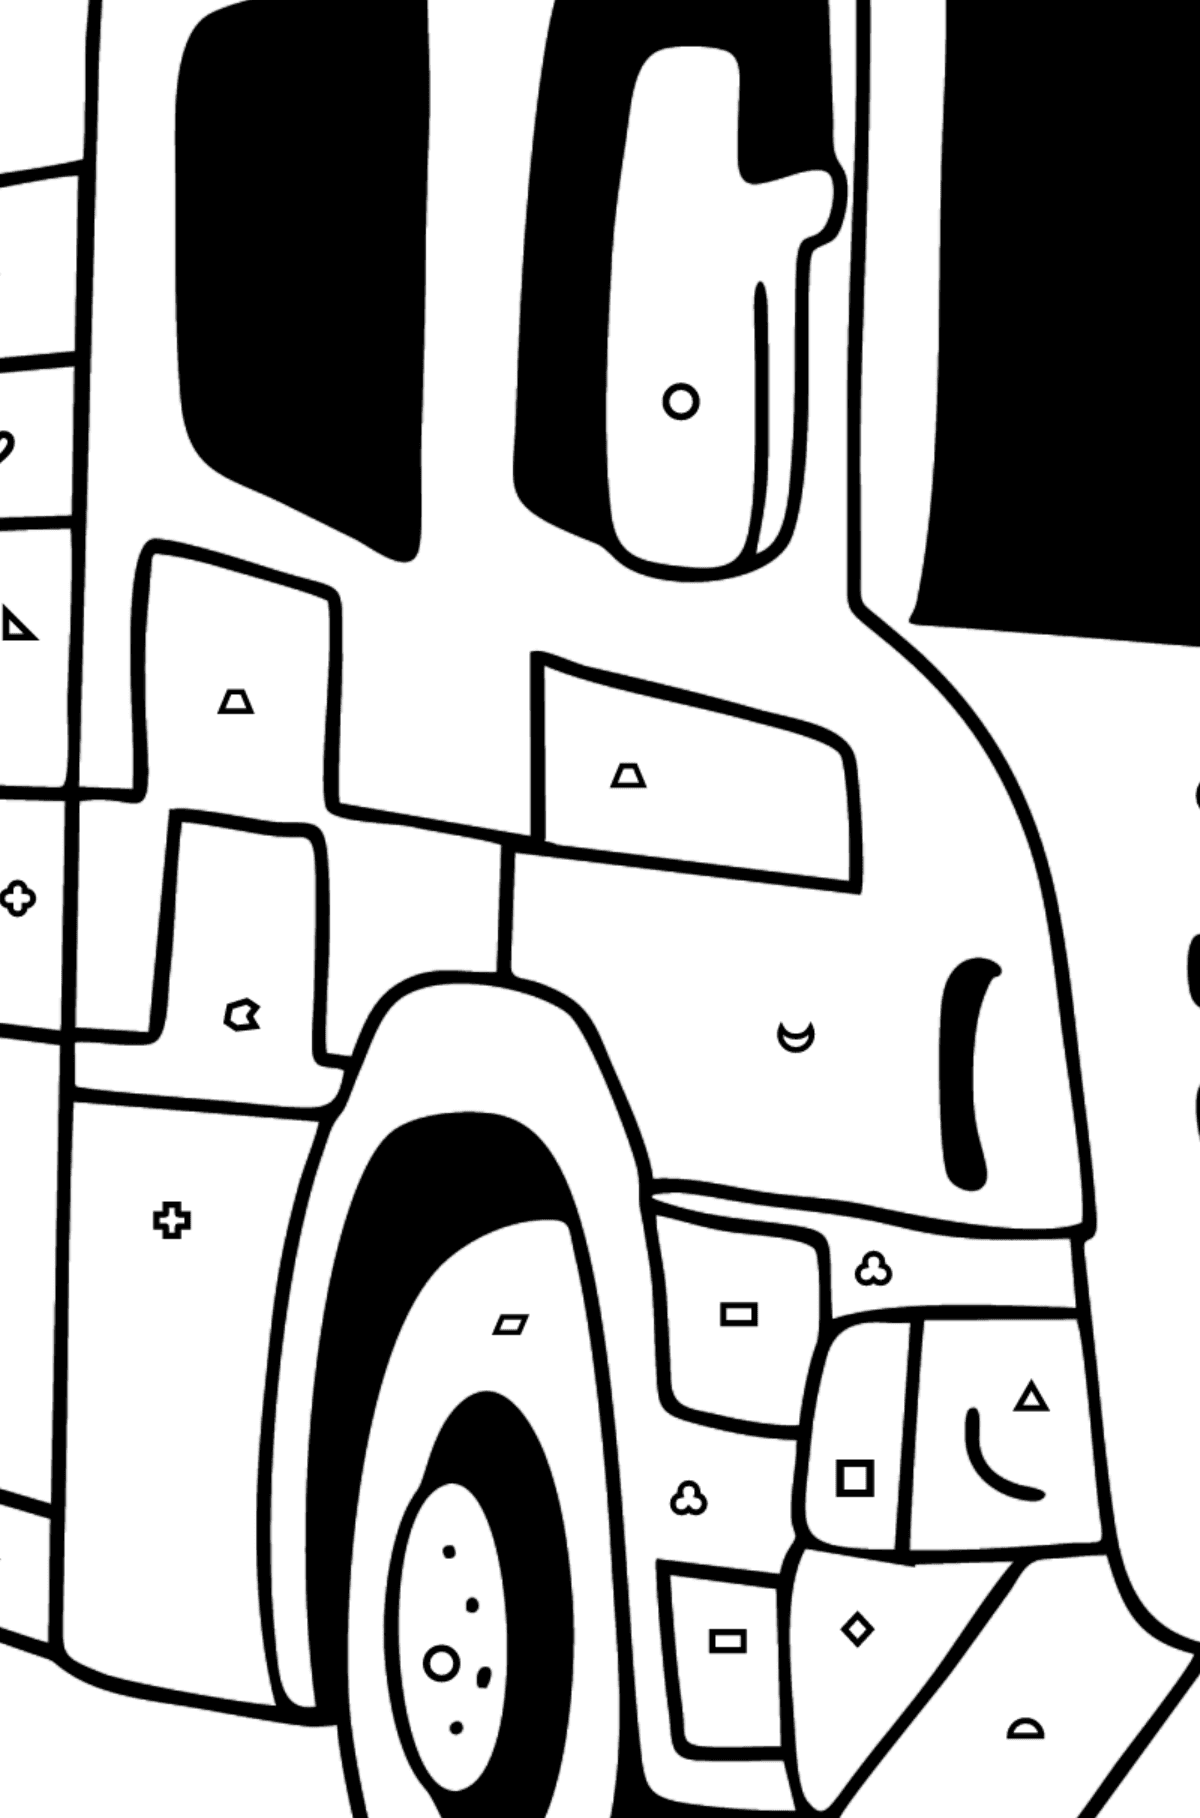 Fire Truck in Great Britain coloring page - Coloring by Geometric Shapes for Kids